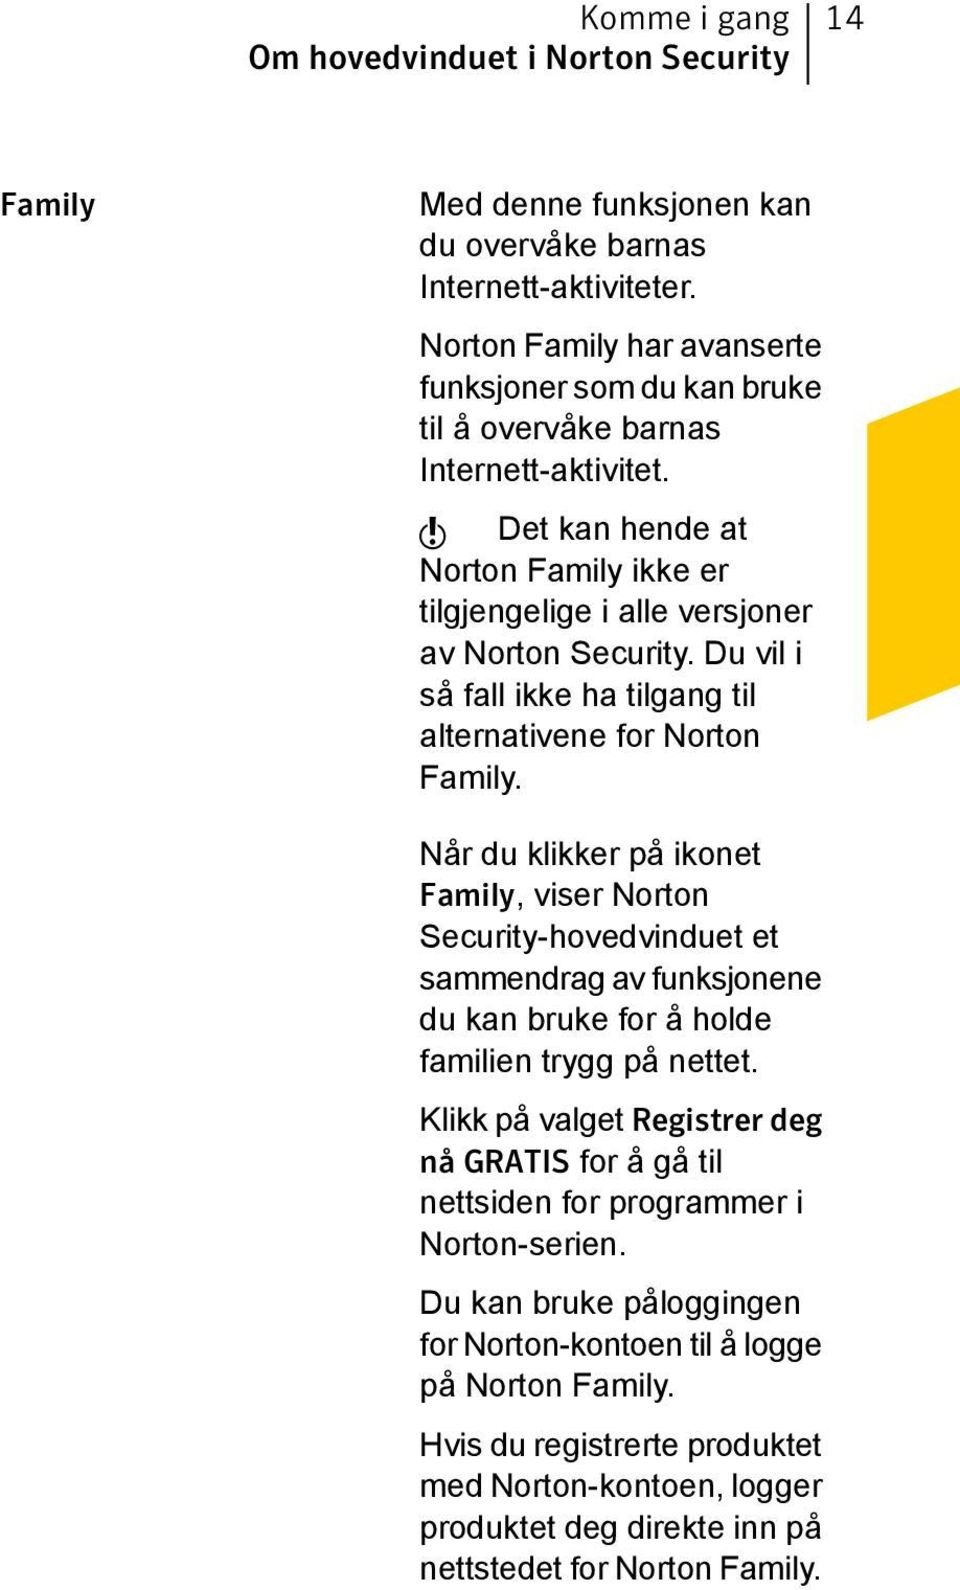 Du vil i så fall ikke ha tilgang til alternativene for Norton Family.